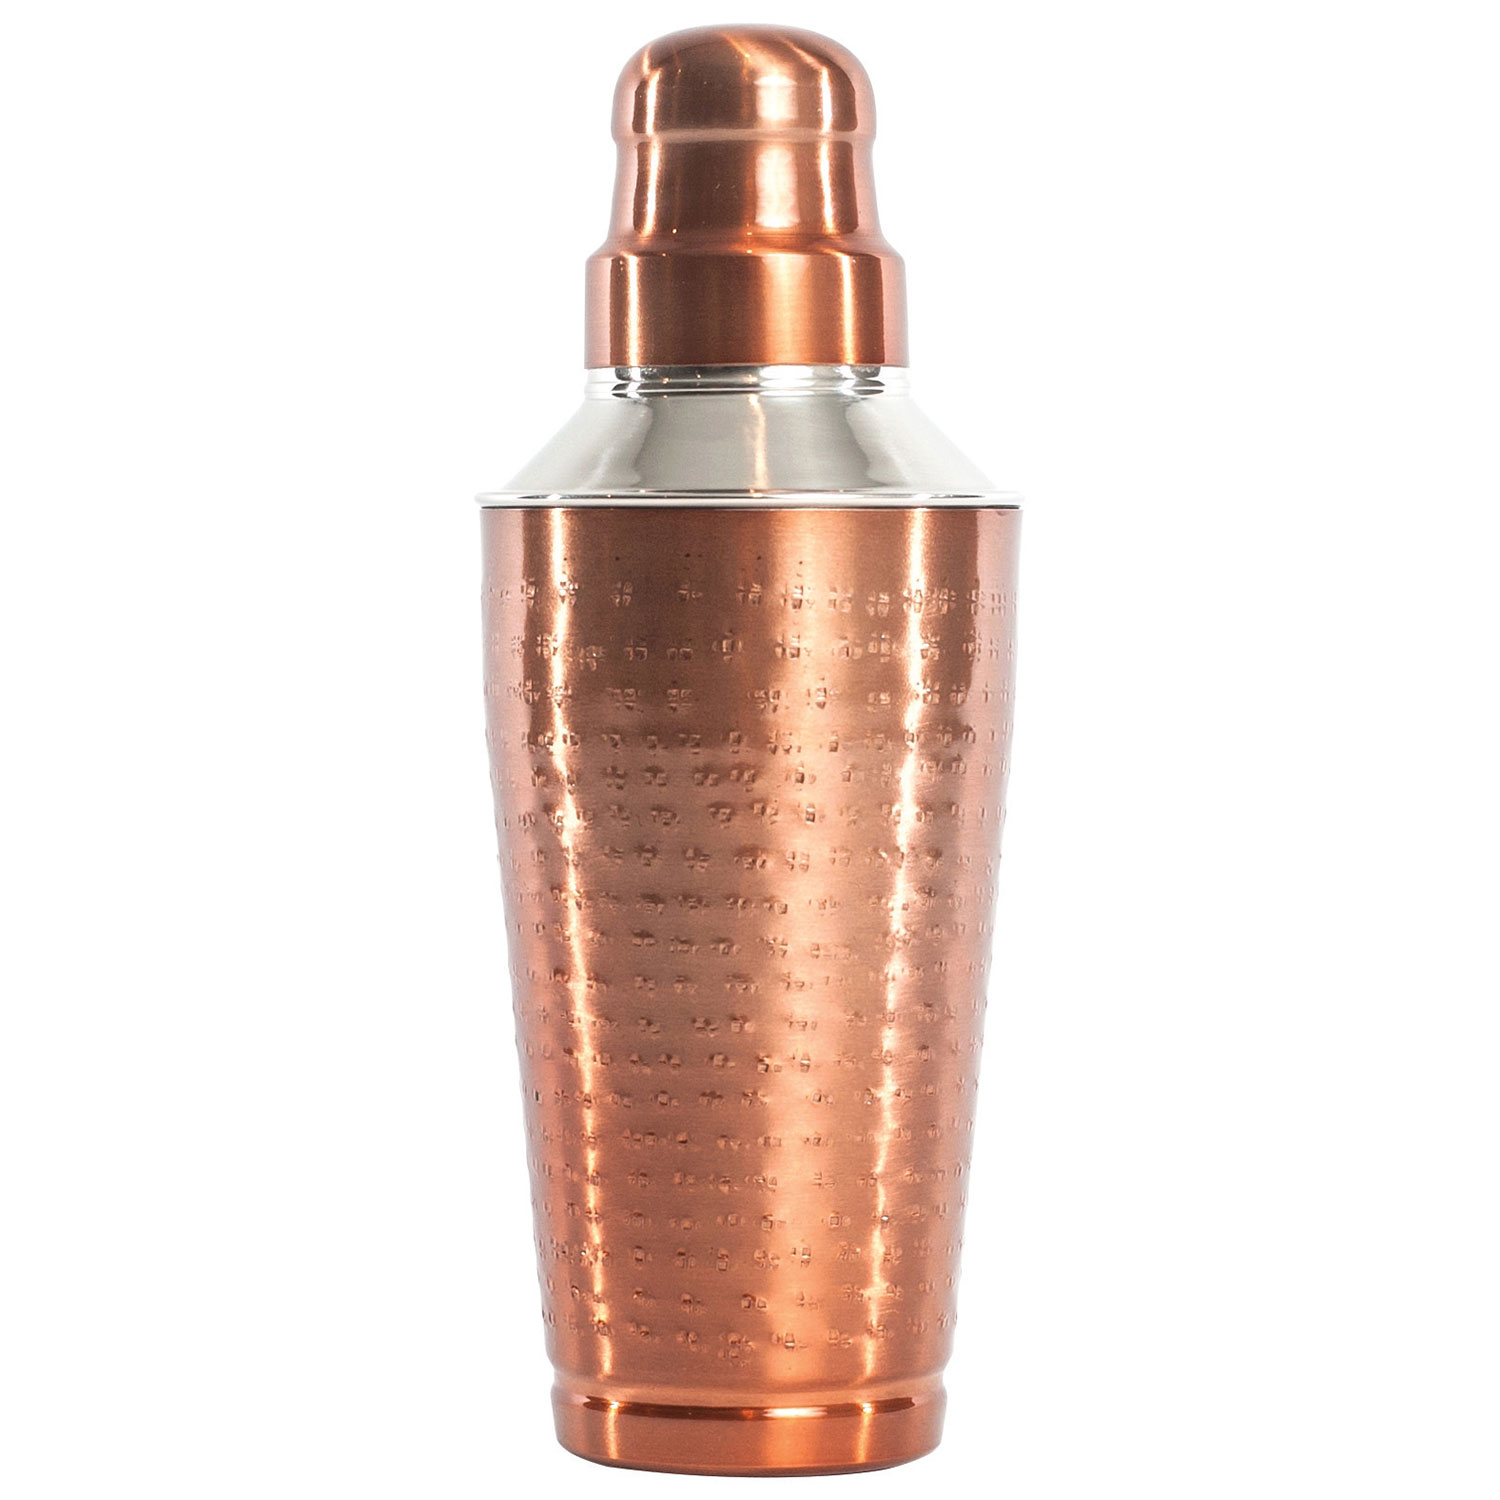 Bel Air 700ml Stainless Steel Cocktail Shaker Copper Mix Your Using A Keyboard Shakers Mixing Tools Best Buy Canada